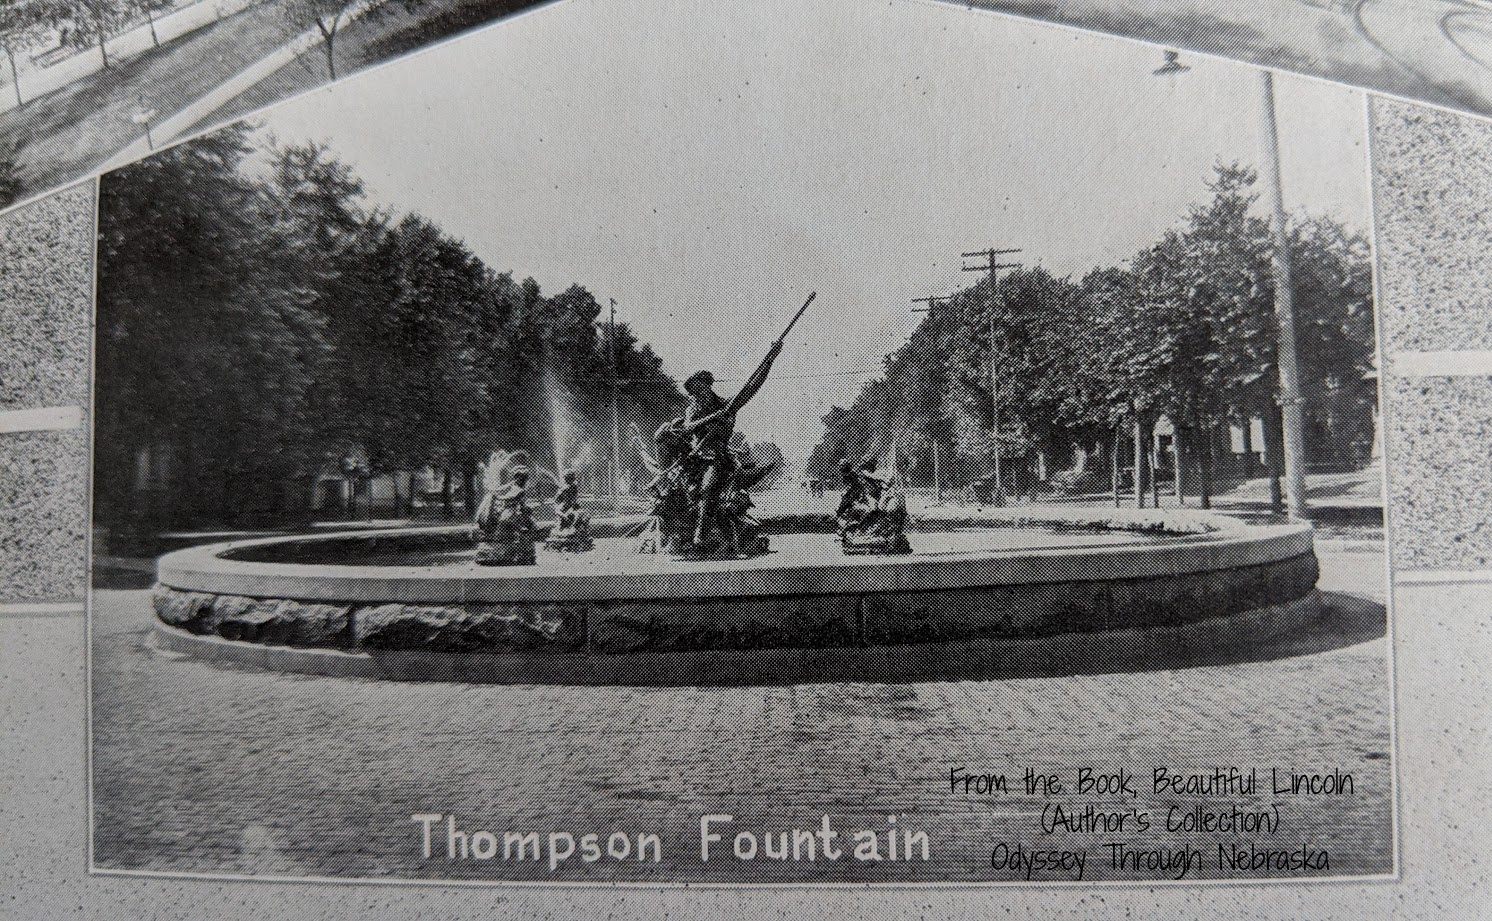 Thompson Fountain